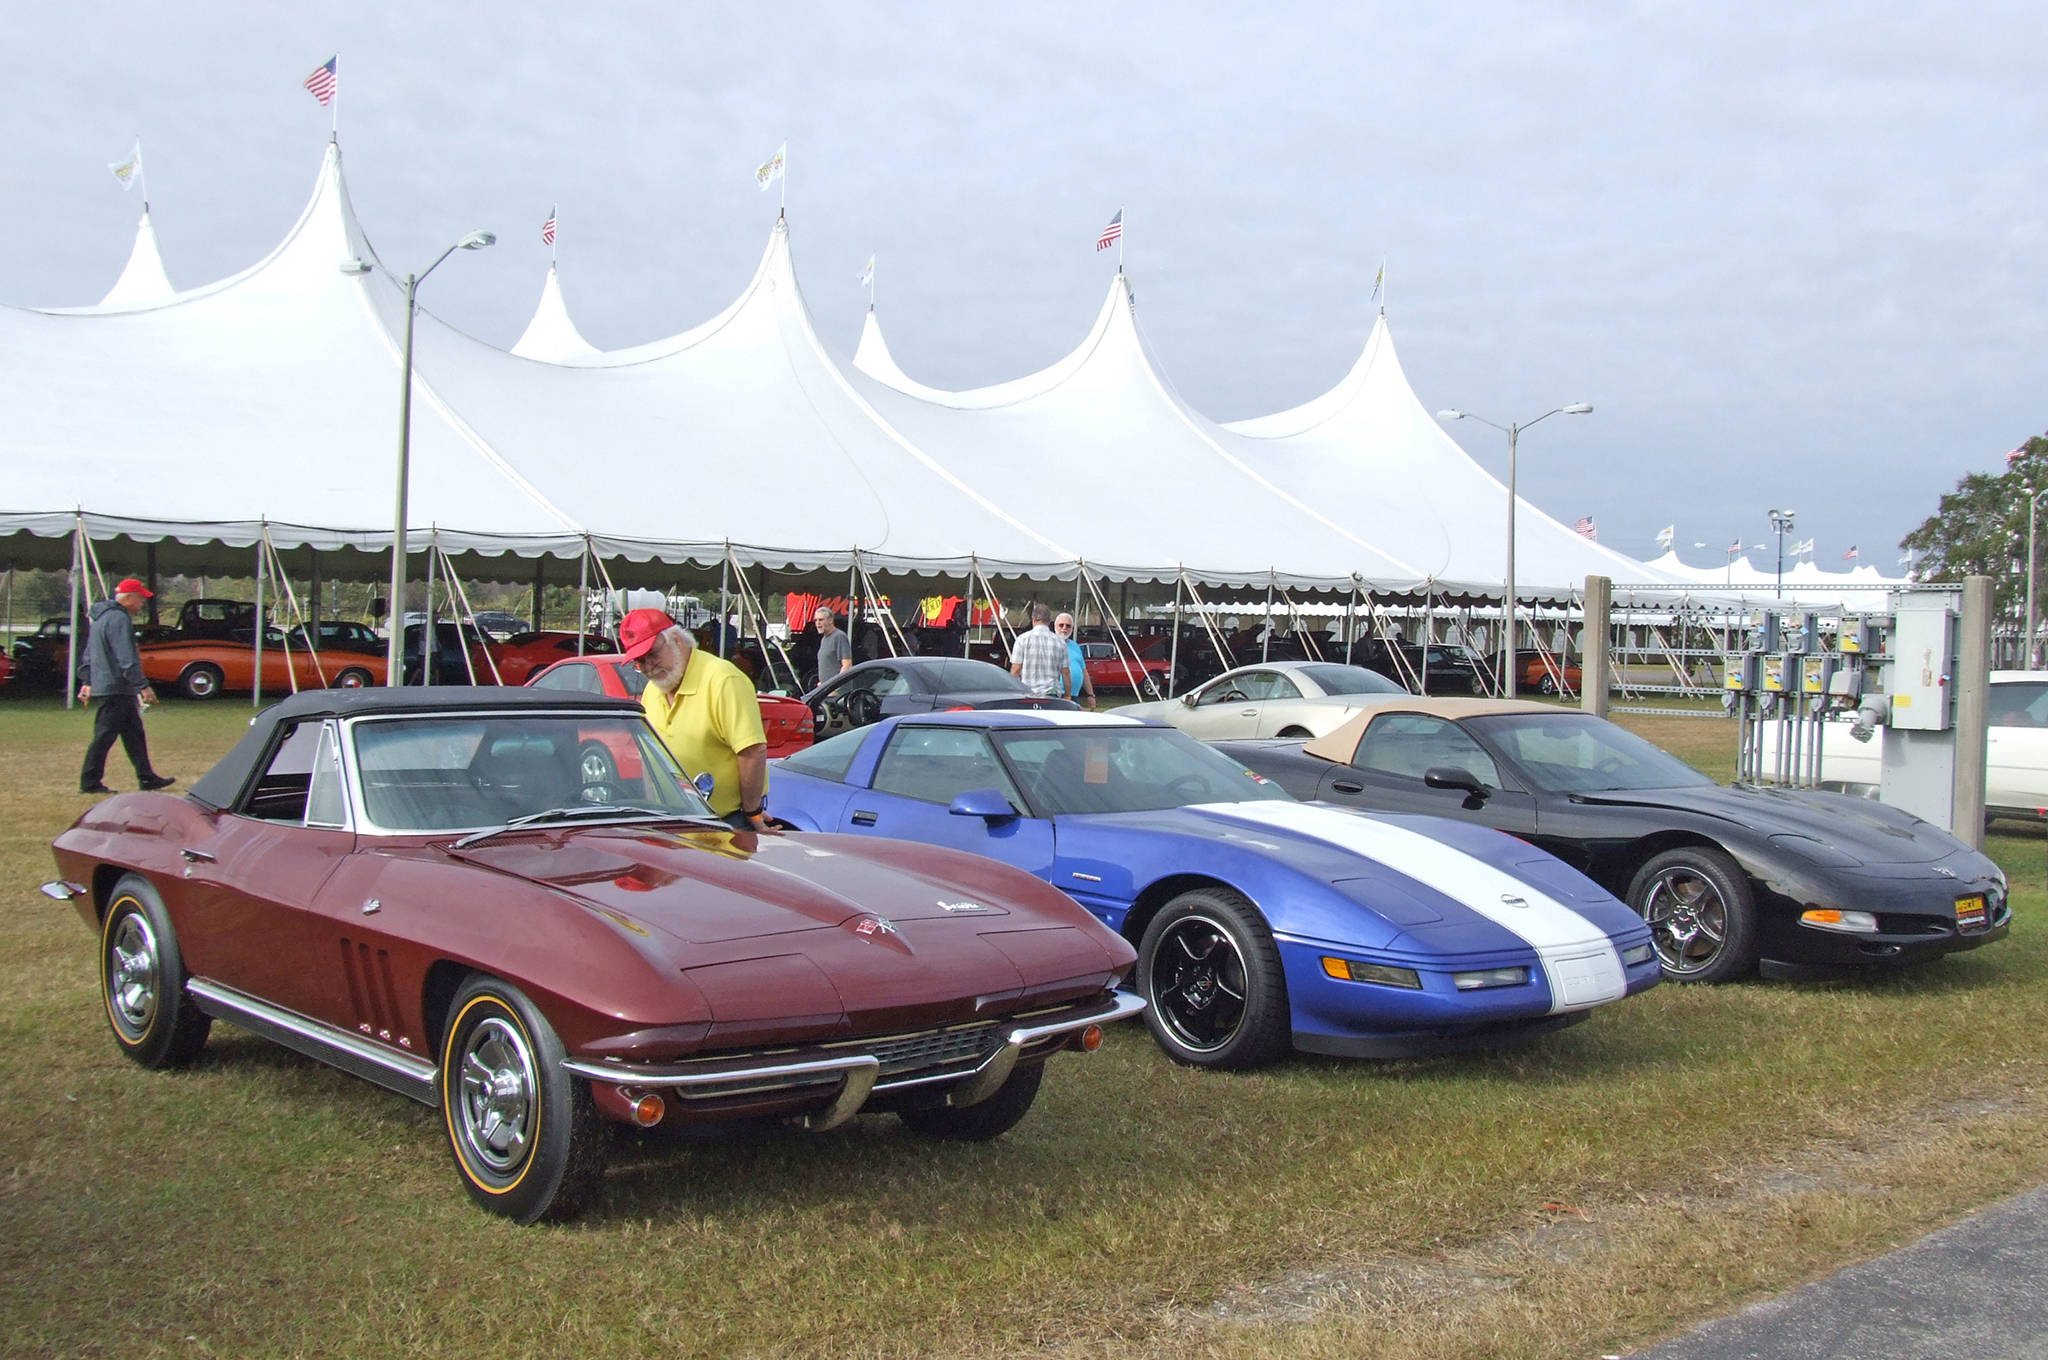 """""""The Bid Goes On"""" cars did not reach their reserve prices but are still available for sale. This gives buyers and spectators a chance to see cars that went over the block days before."""